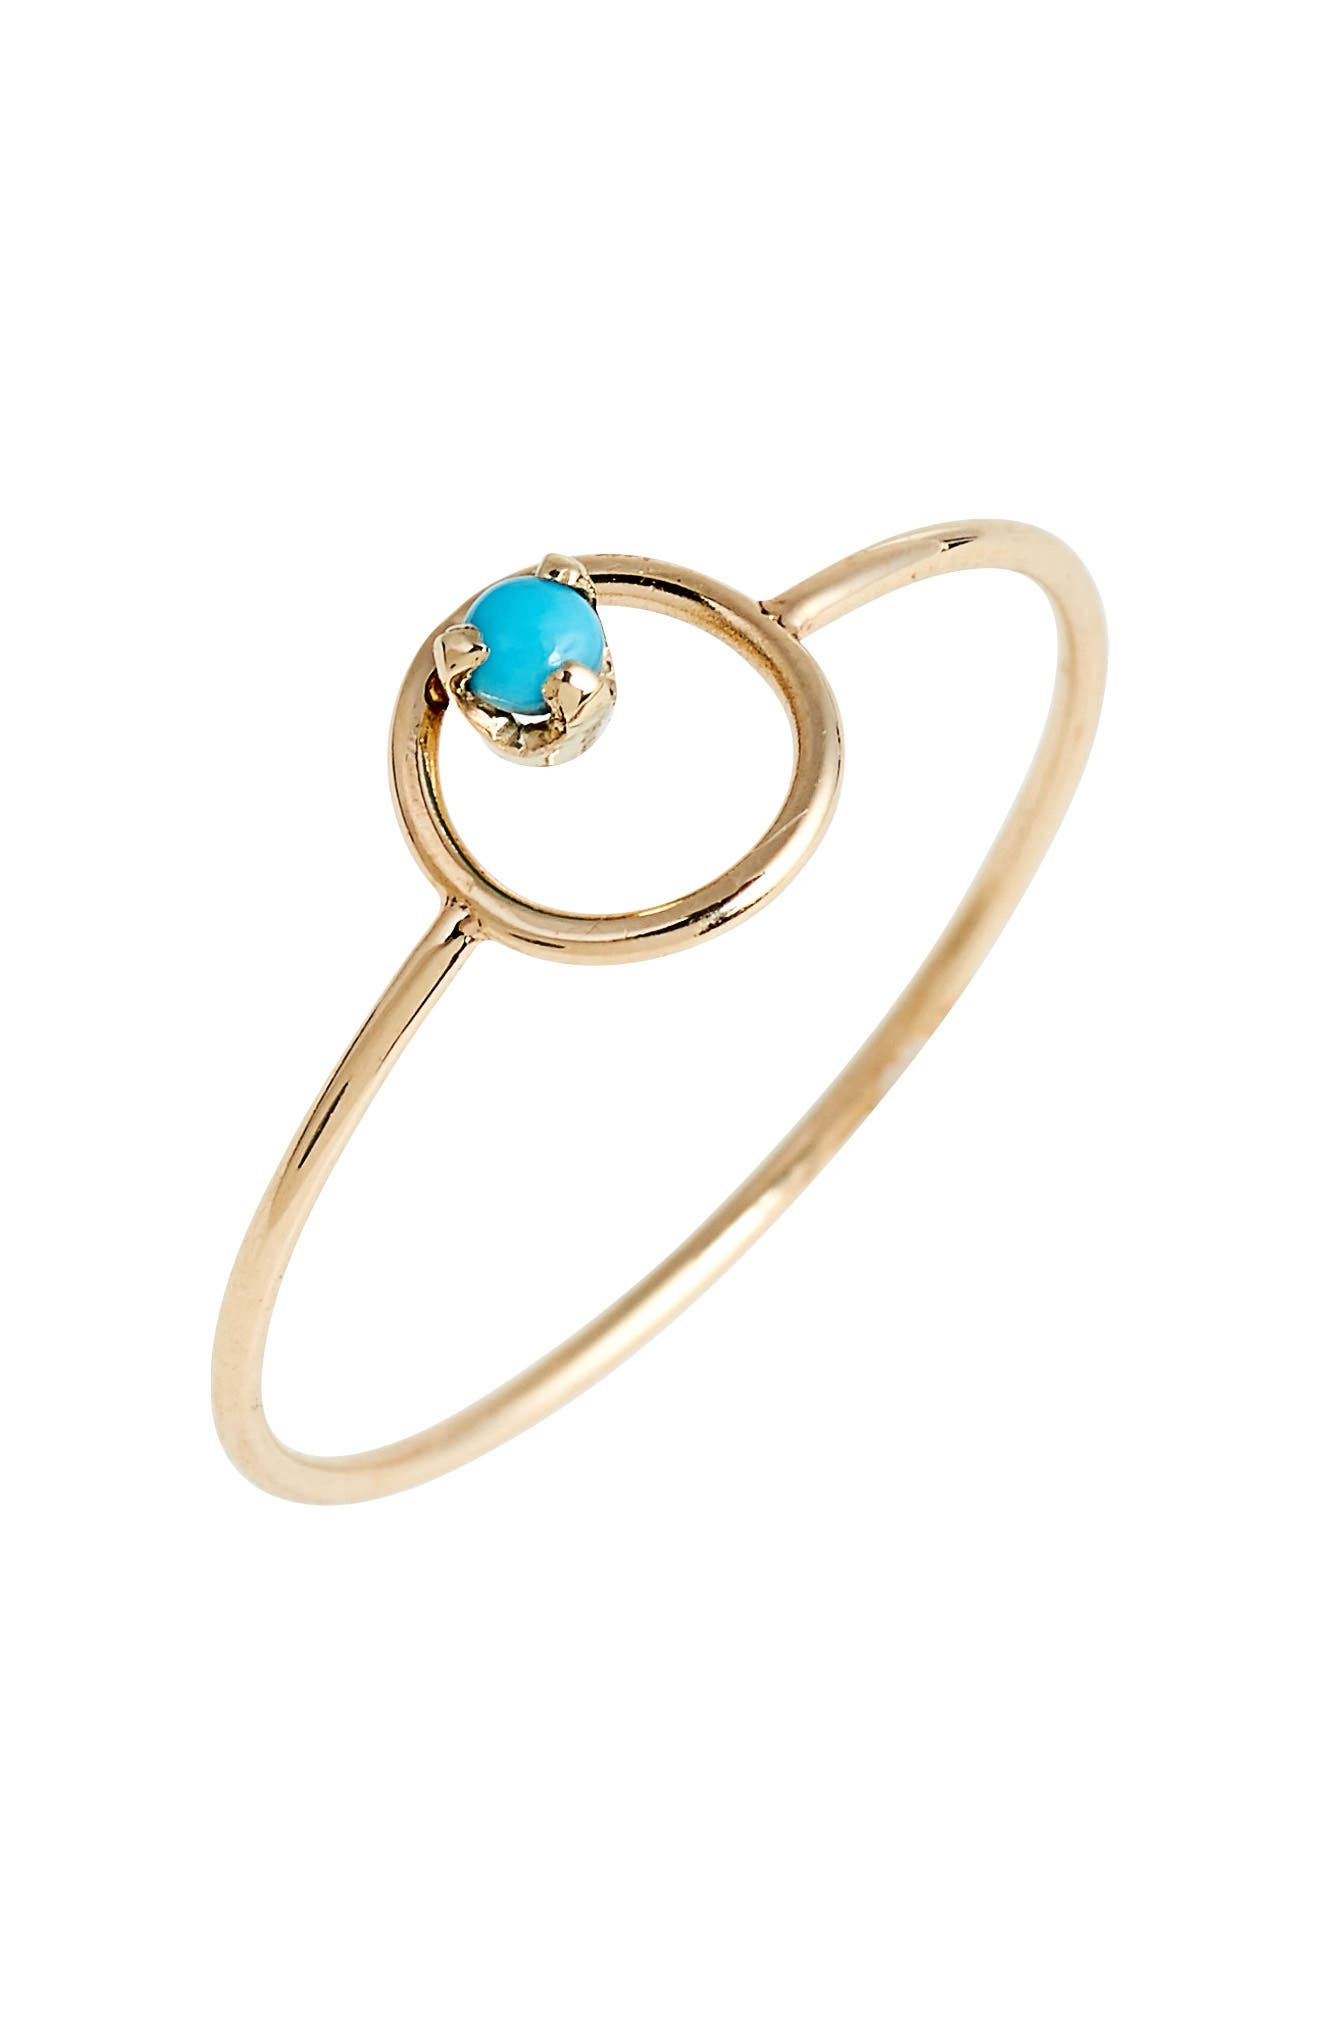 ZOË CHICCO Turquoise Circle Ring, Main, color, 710